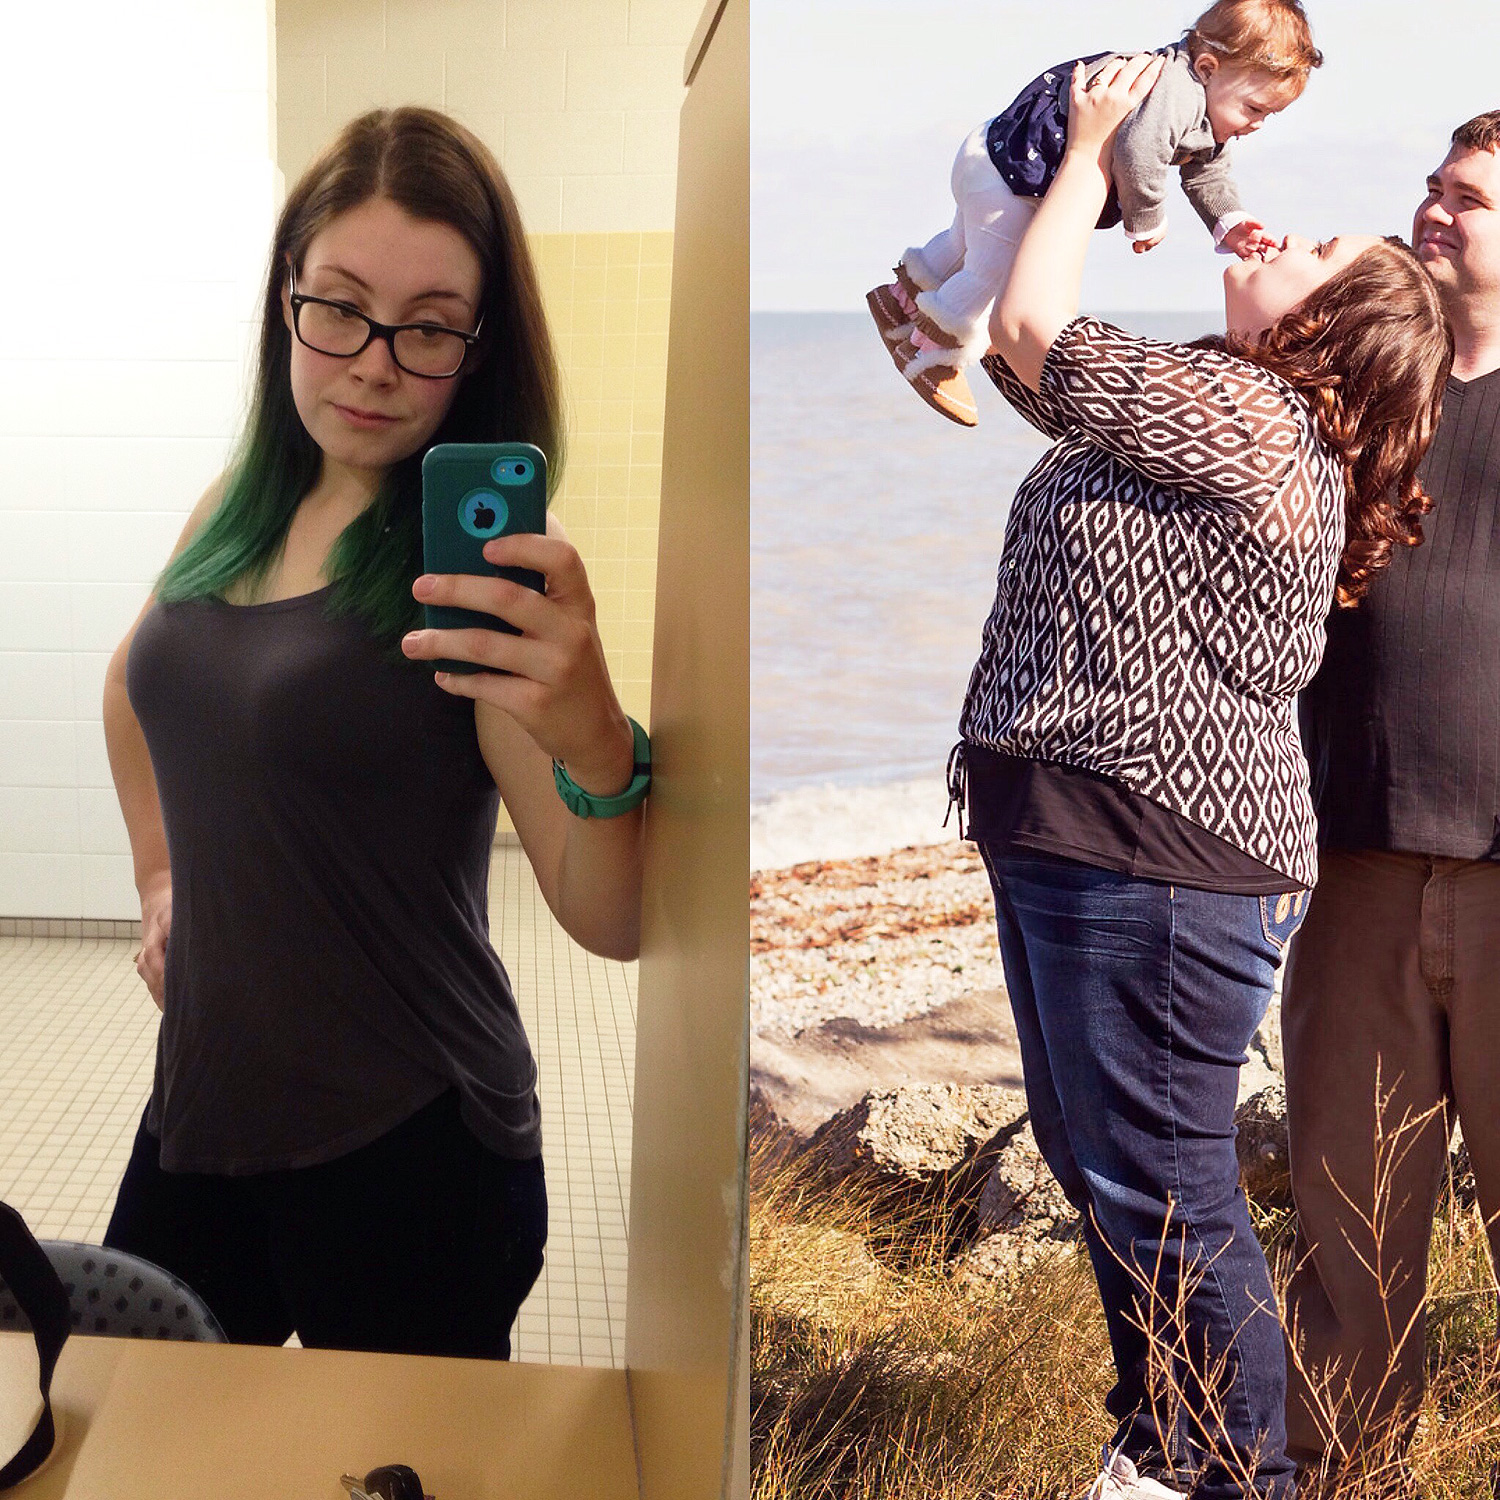 Mom of 3 Drops 120 Lbs. After Having Her Youngest Child: 'I Wanted to Get Healthy for My Kids'